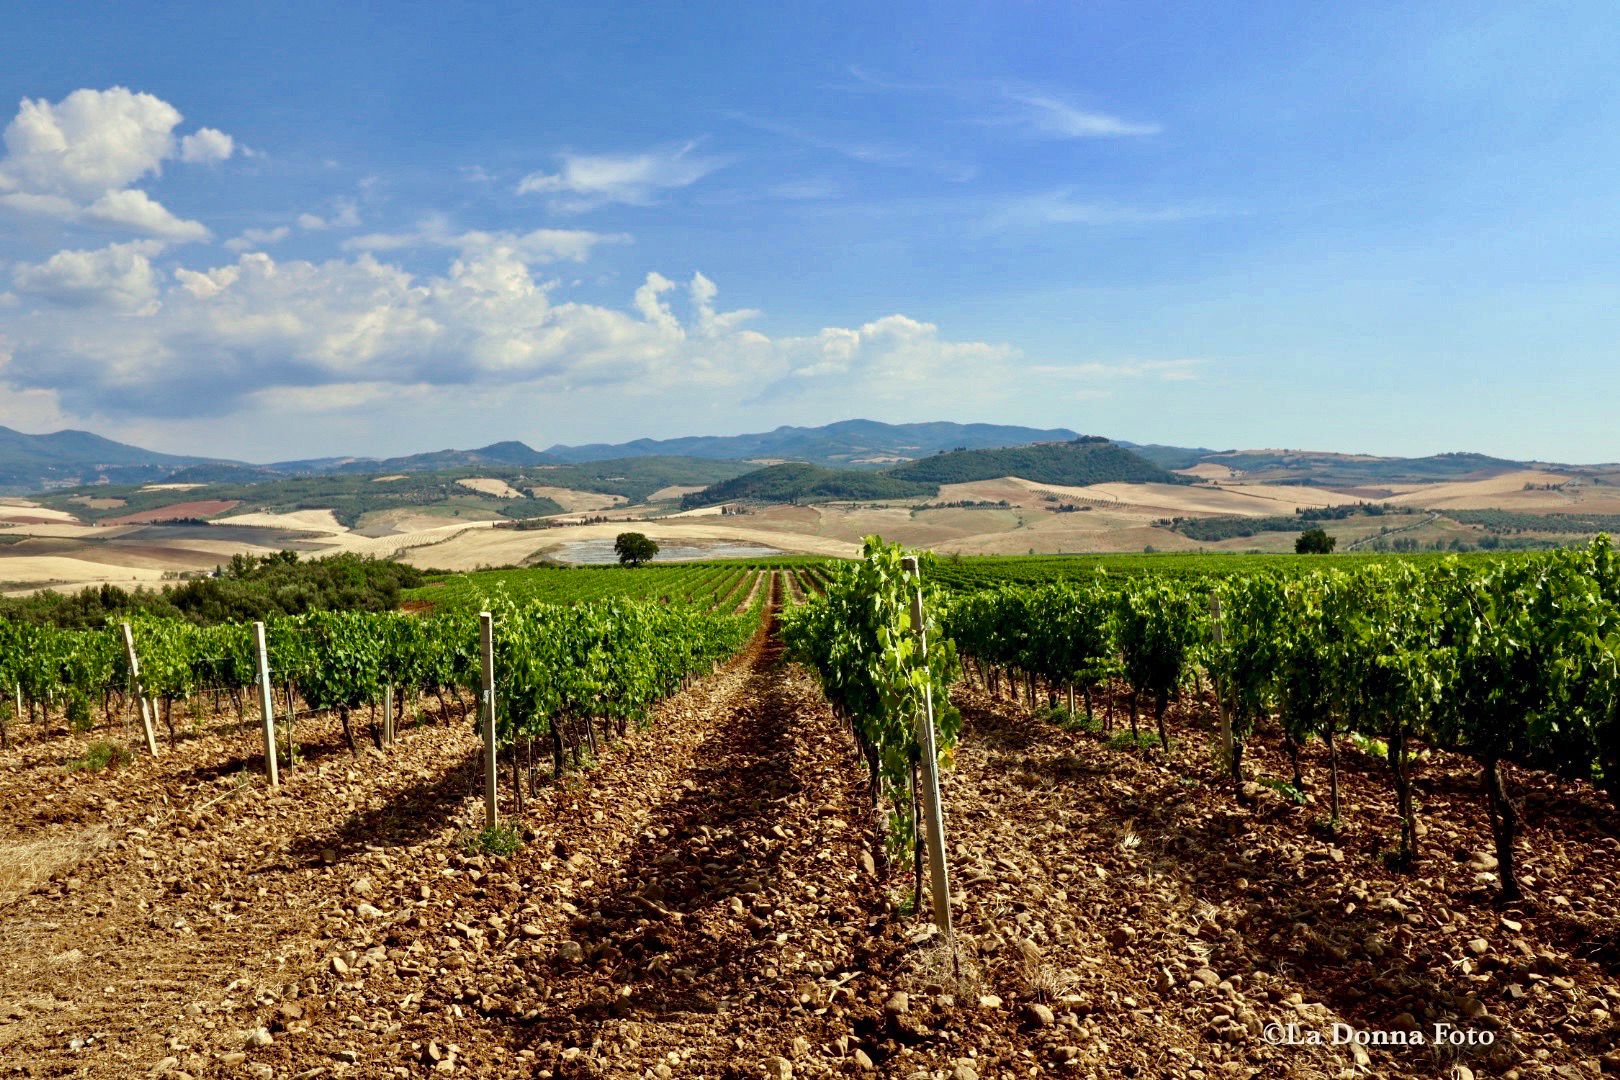 Summer Tuscan Vineyard - Beautiful International Landscape Photography - La Donna Foto - LaDonnaFoto.com